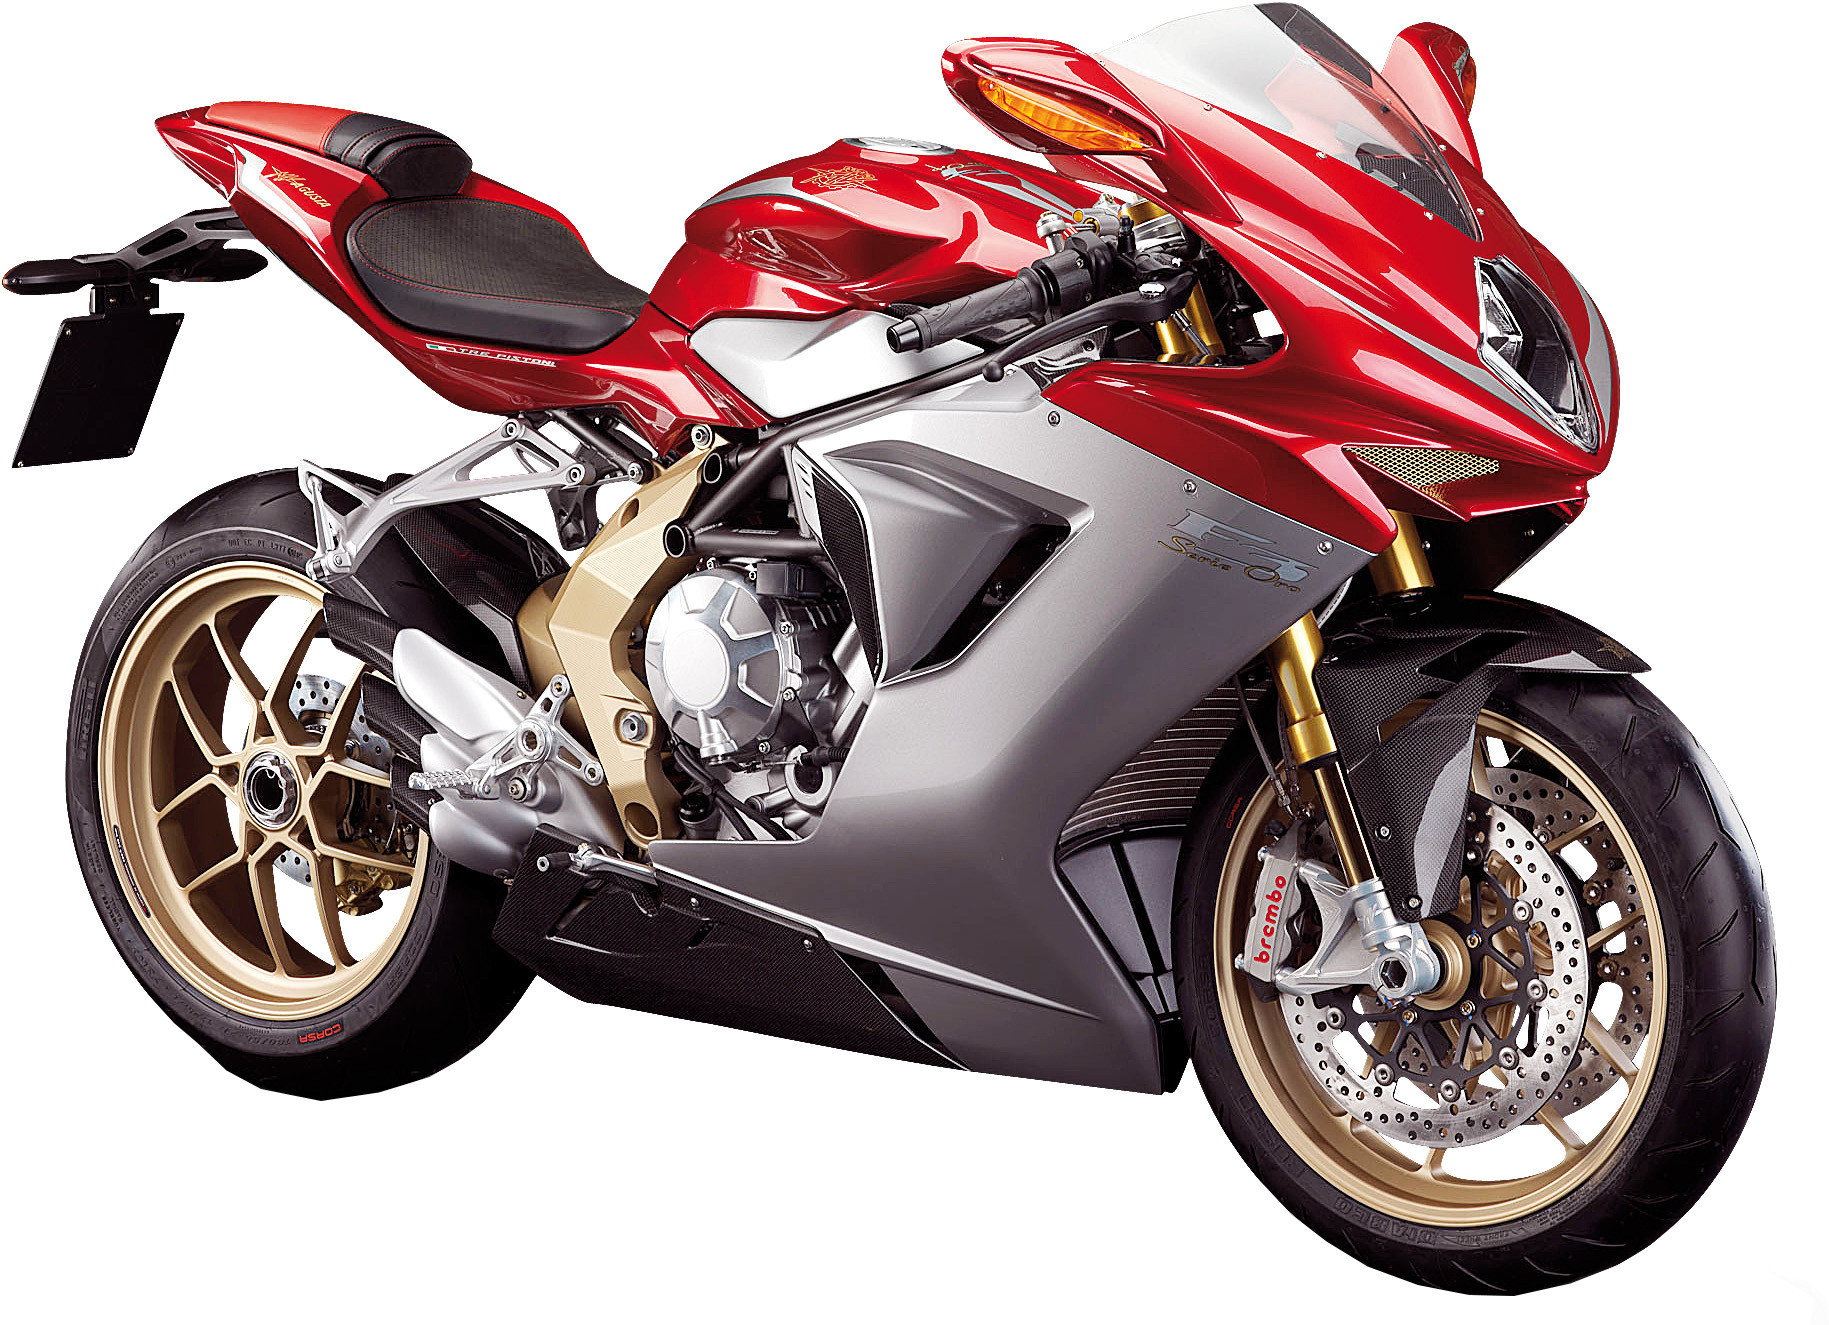 MV Agusta F3 Serie Oro 2012 images #114364